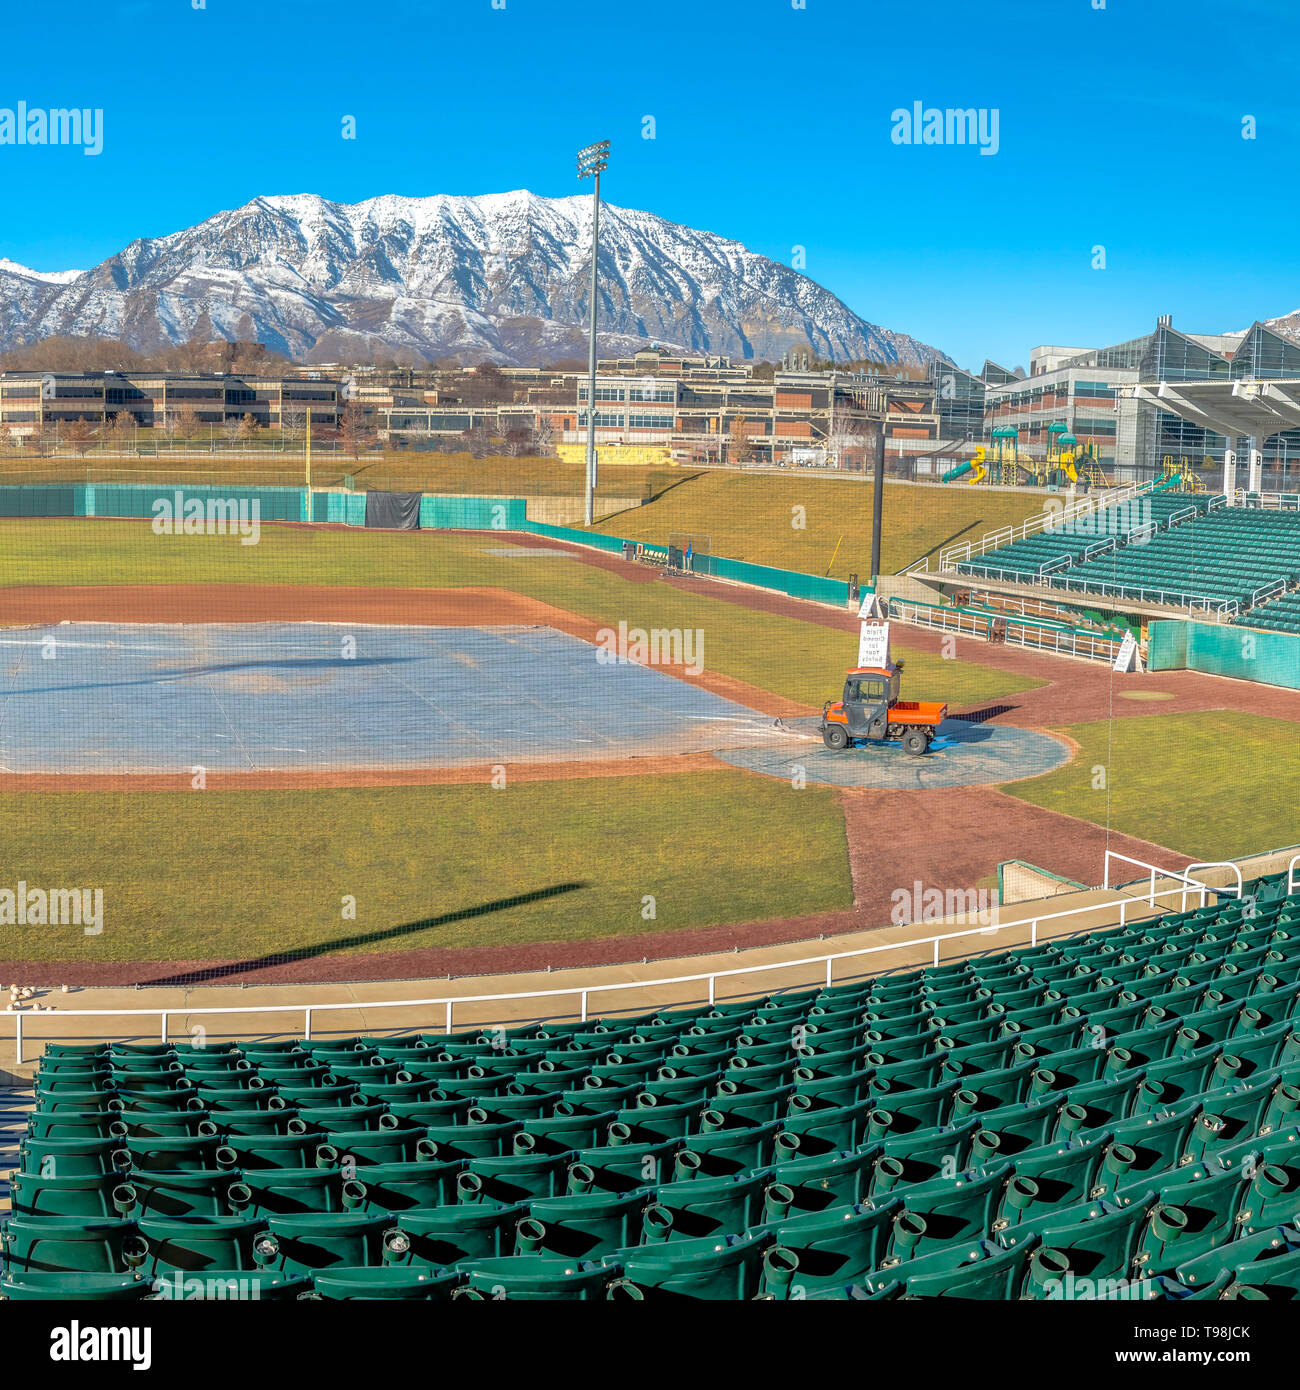 Baseball Stadium Seating Stock Photos Amp Baseball Stadium Seating Stock Images